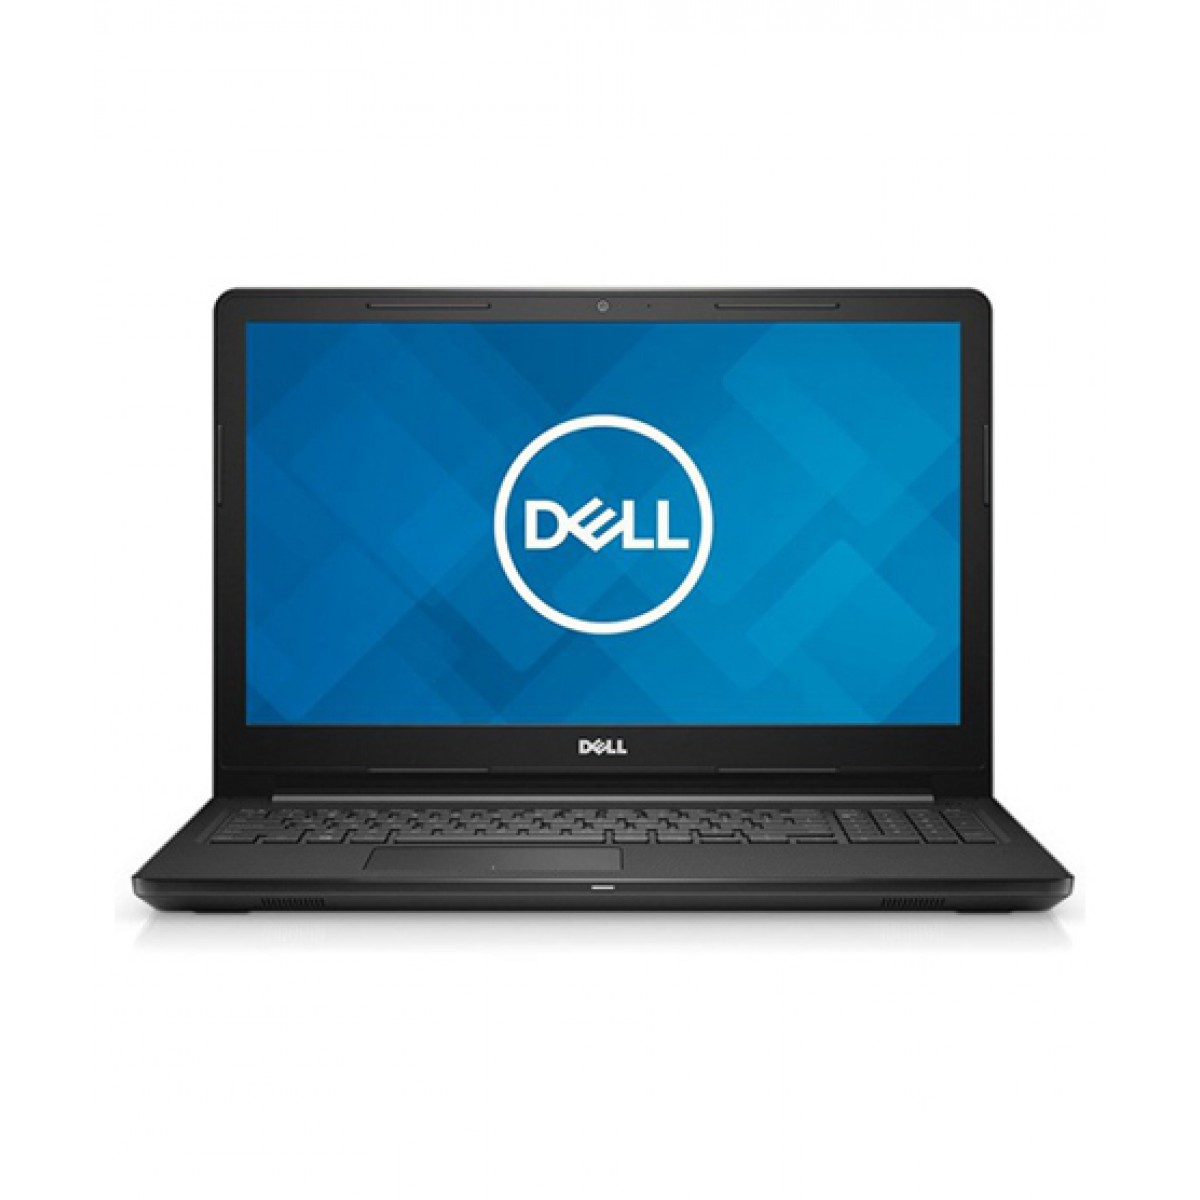 dell_inspiron_15_3000_series_core_i5_8th_generation_radeon_520_laptop_3576_